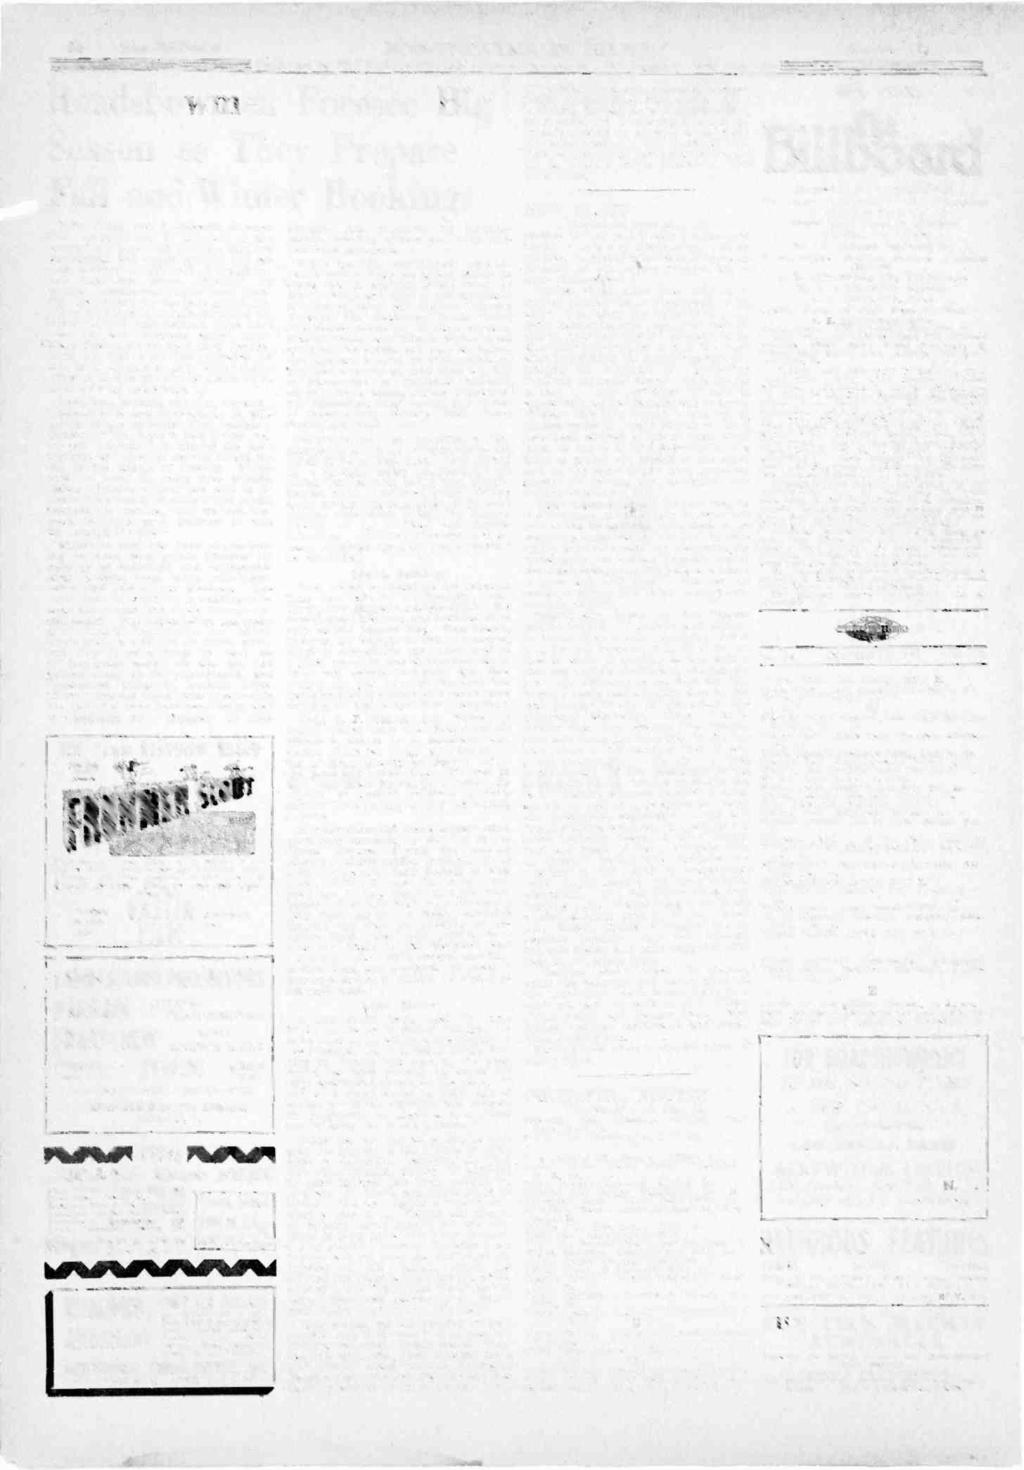 October I Cents Vol Pdf Click Here For An Exploded Parts Diagram From Fulton Armory 28 The Billboard Non Theatrical Films Conducted By Roadshowman Communications To 1564